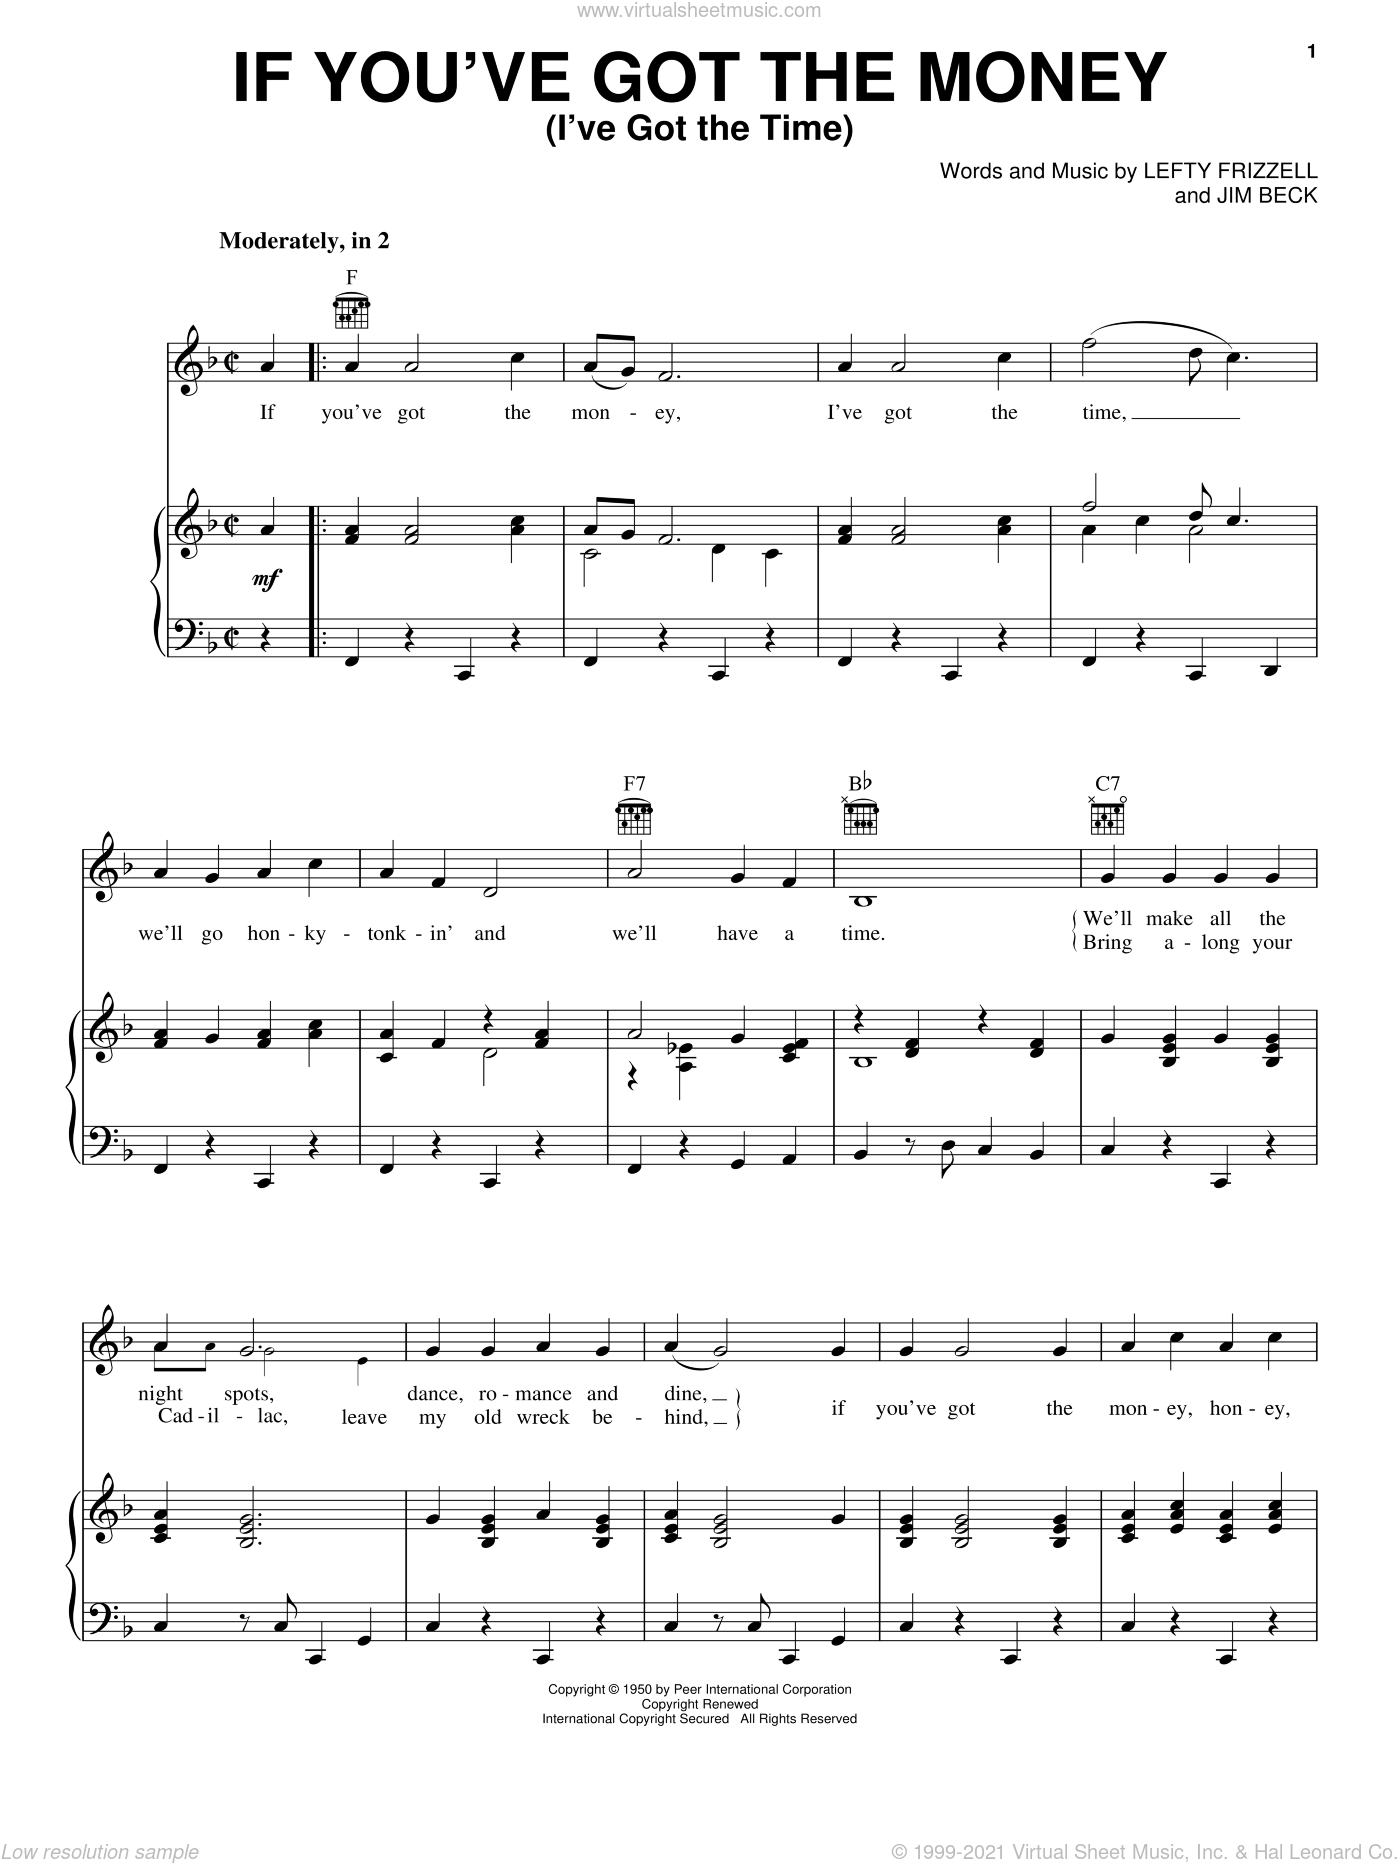 If You've Got The Money (I've Got The Time) sheet music for voice, piano or guitar by Lefty Frizzell, Willie Nelson and Jim Beck, intermediate skill level